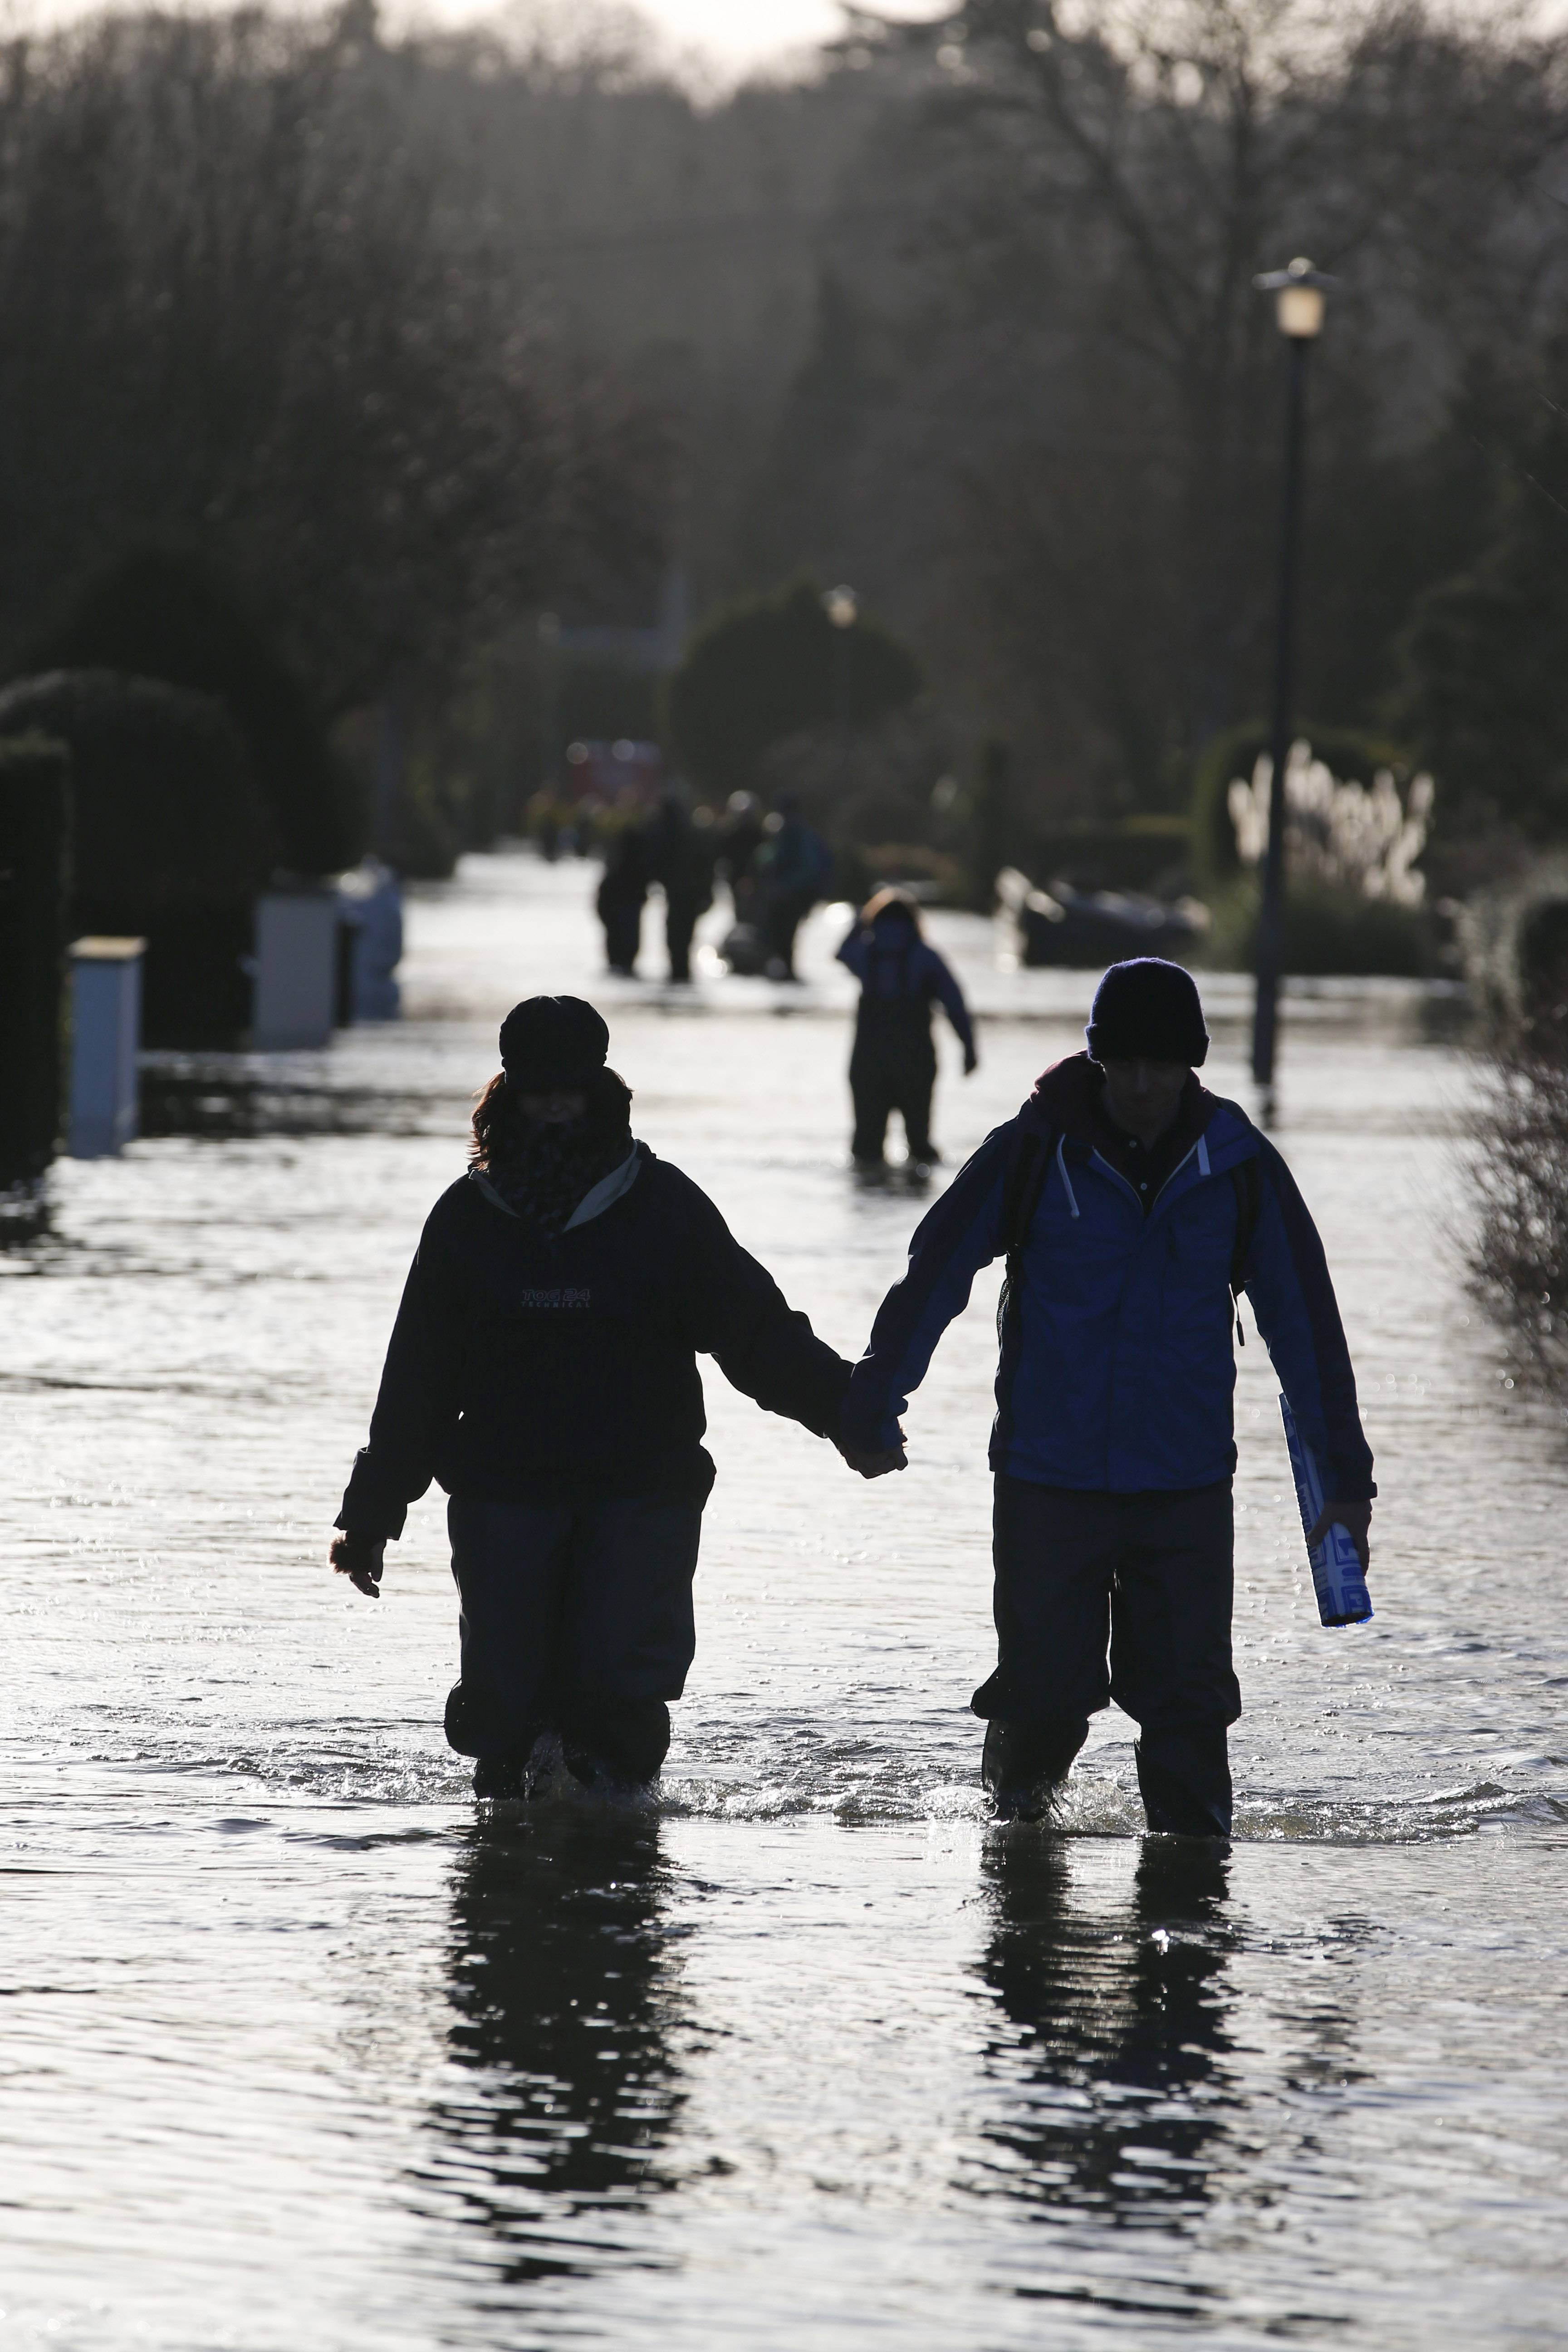 Residents walk in the flooded village of Wraysbury, England, Tuesday, Feb. 11, 2014. British Prime Minister David Cameron says that money is no object in the fight against the mass flooding that has hit parts of England and that he is canceling his visit to the Middle East to oversee the effort.